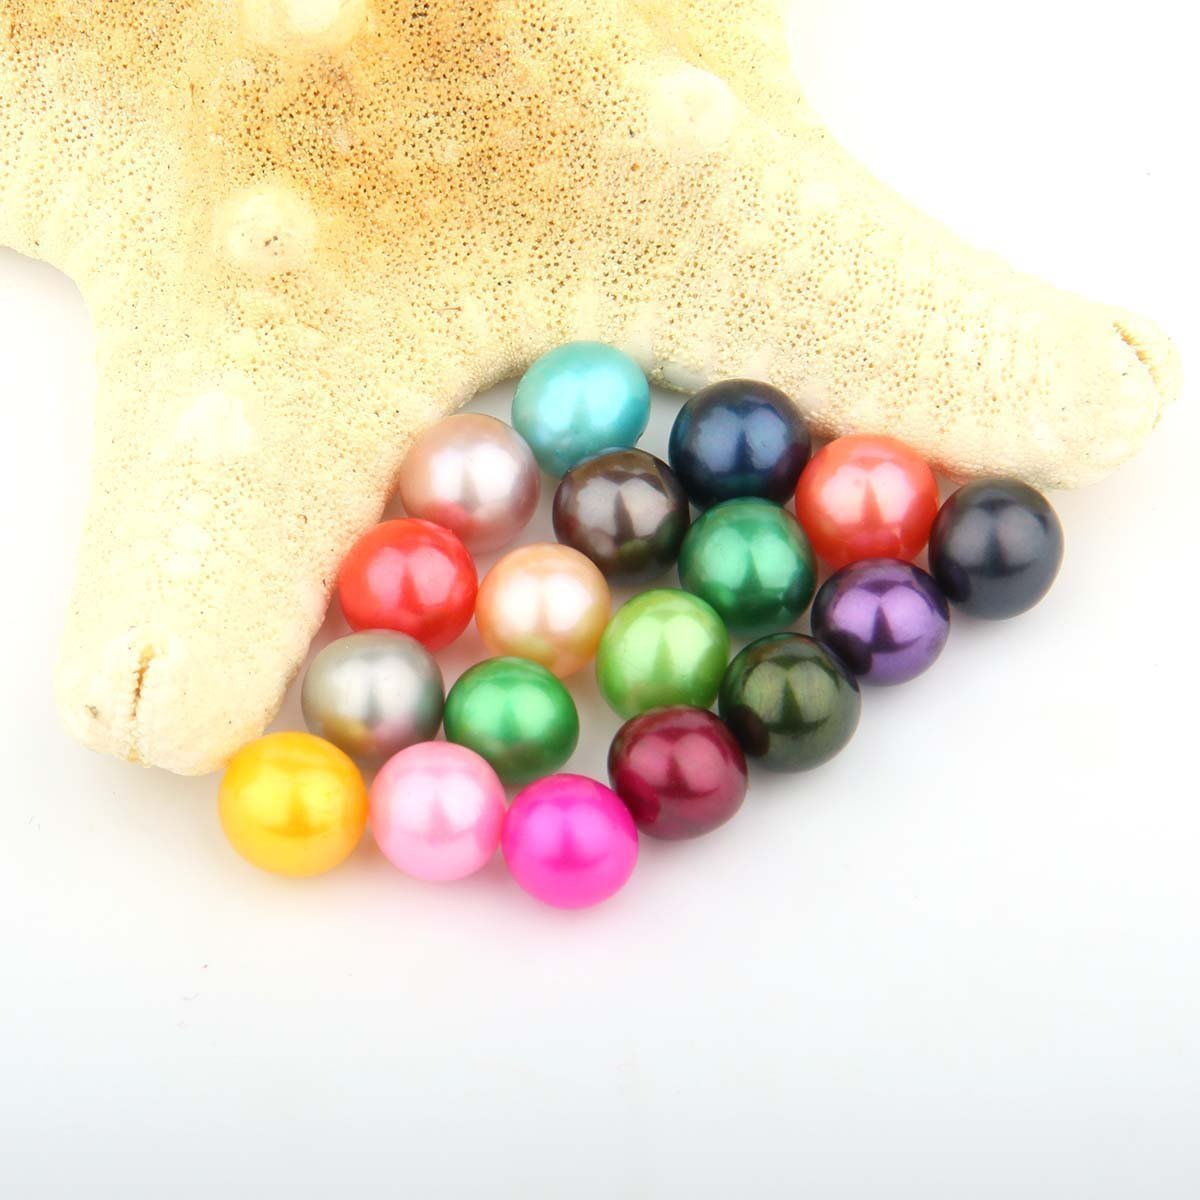 50PC Saltwater Akoya Pearls Oysters with 7-8mm Love Wish Pearl Inside Mixed Colors, Jewelry Making or Birthday Gifts by COOCLE (Image #4)